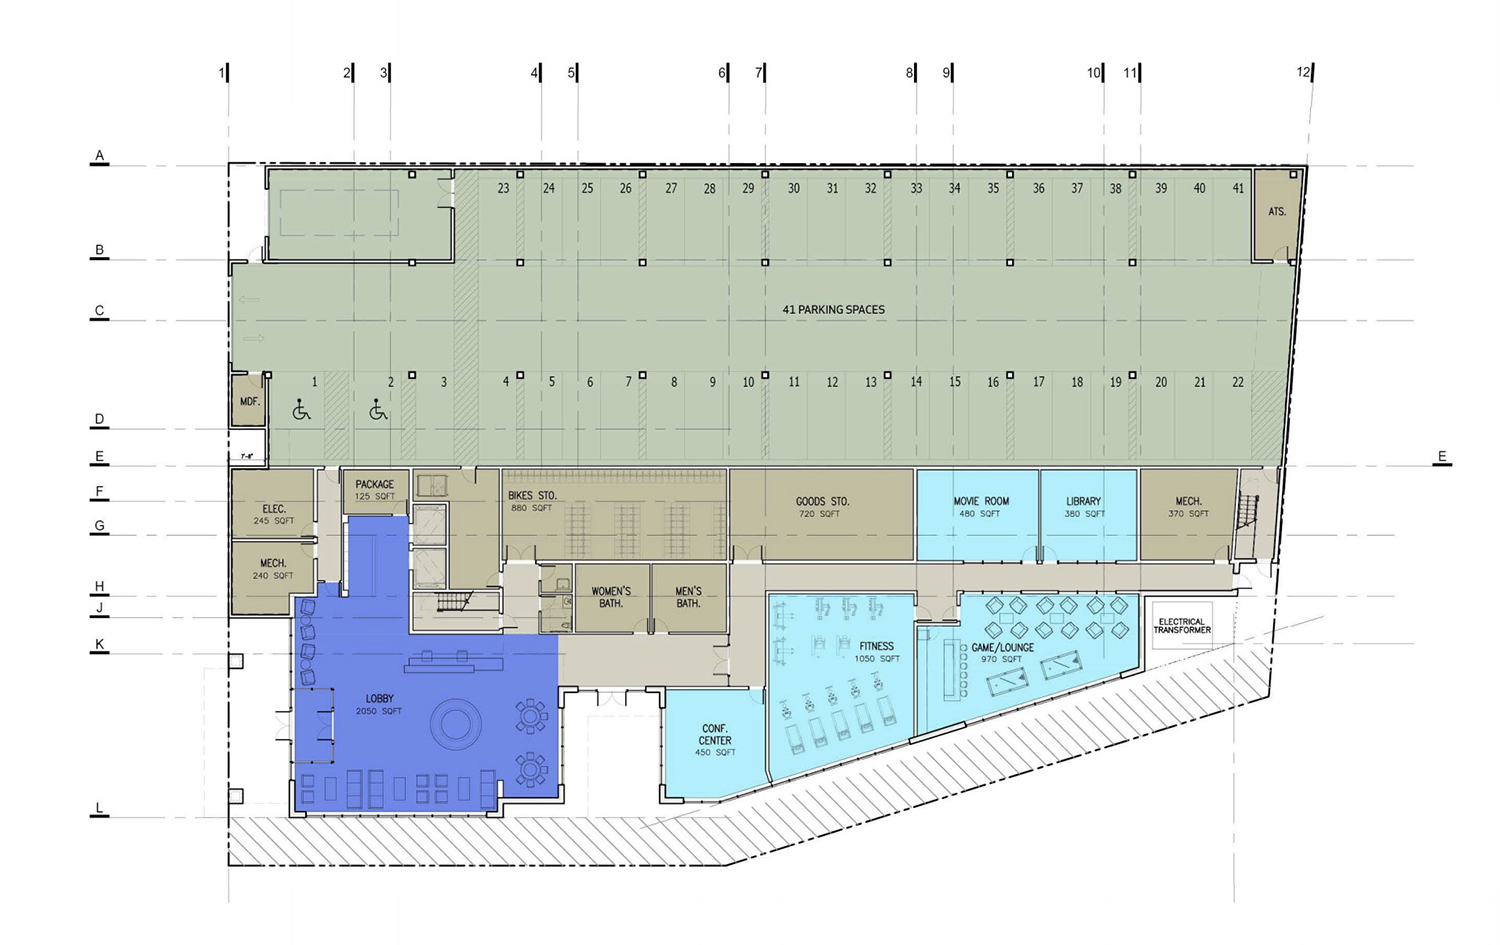 Ground Floor Plan for Building C. Drawing by BuiltForm